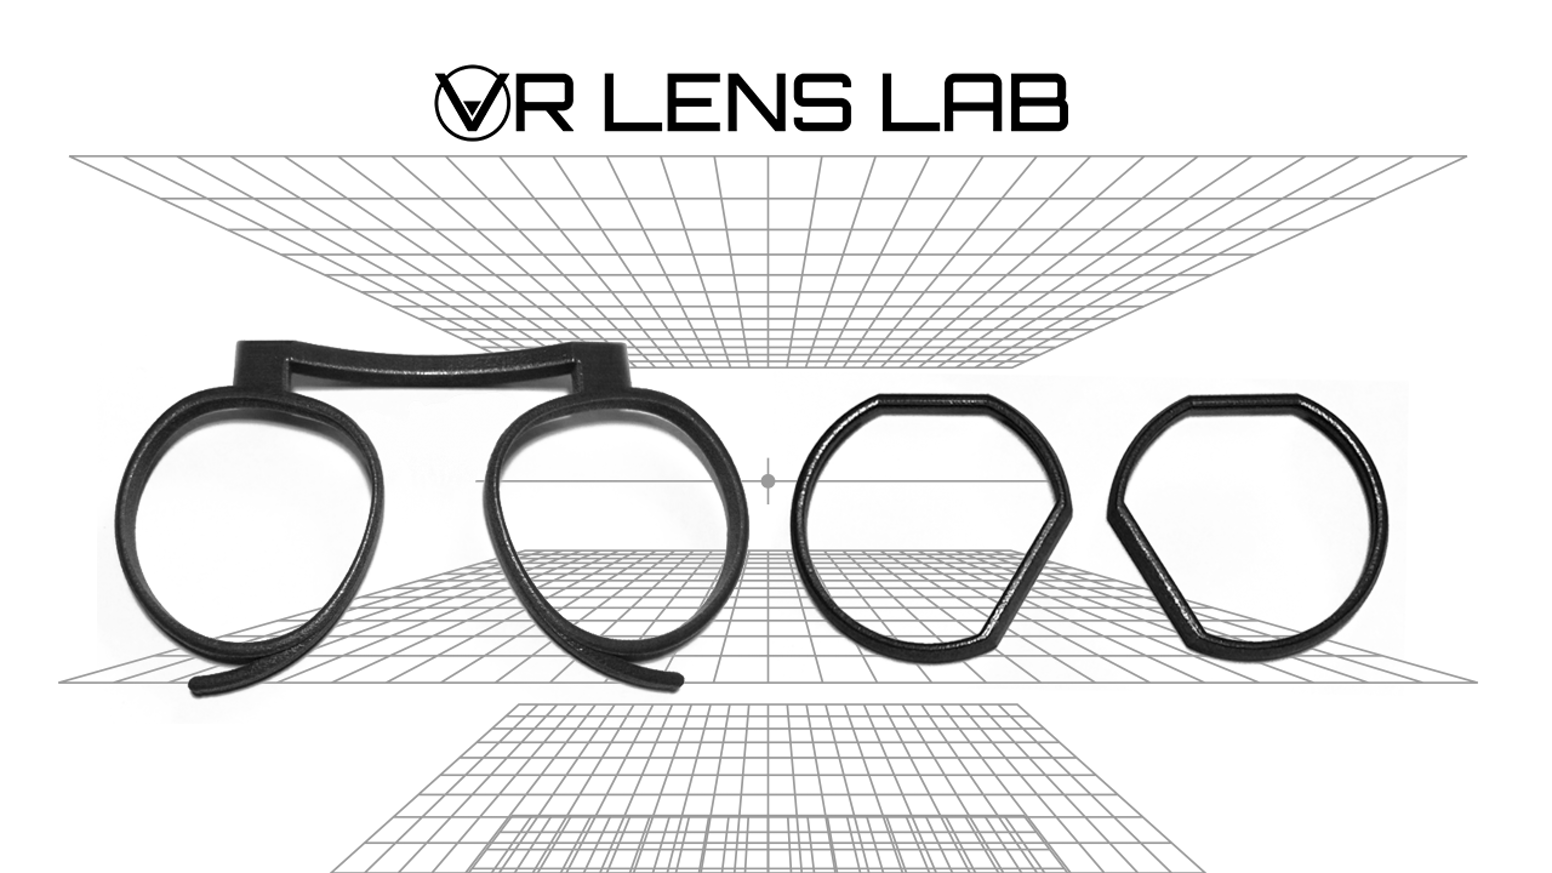 We build glasses for your virtual reality headset inside your virtual reality headset.